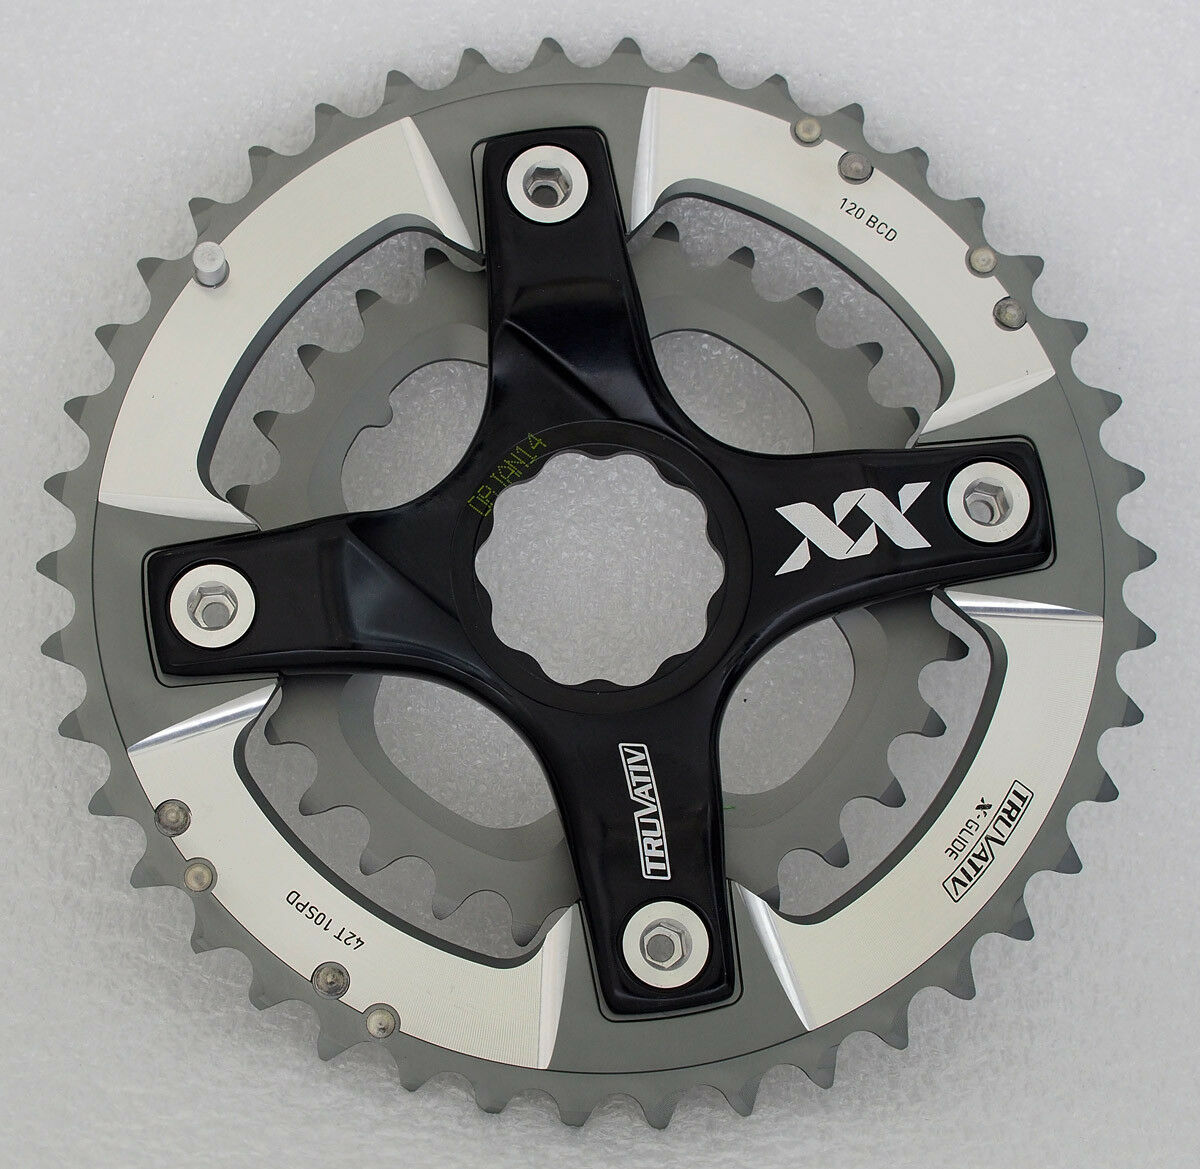 SRAM Truvativ  XX 42-28 T Chainring Set and Spider for Specialized S-Works Crank  be in great demand